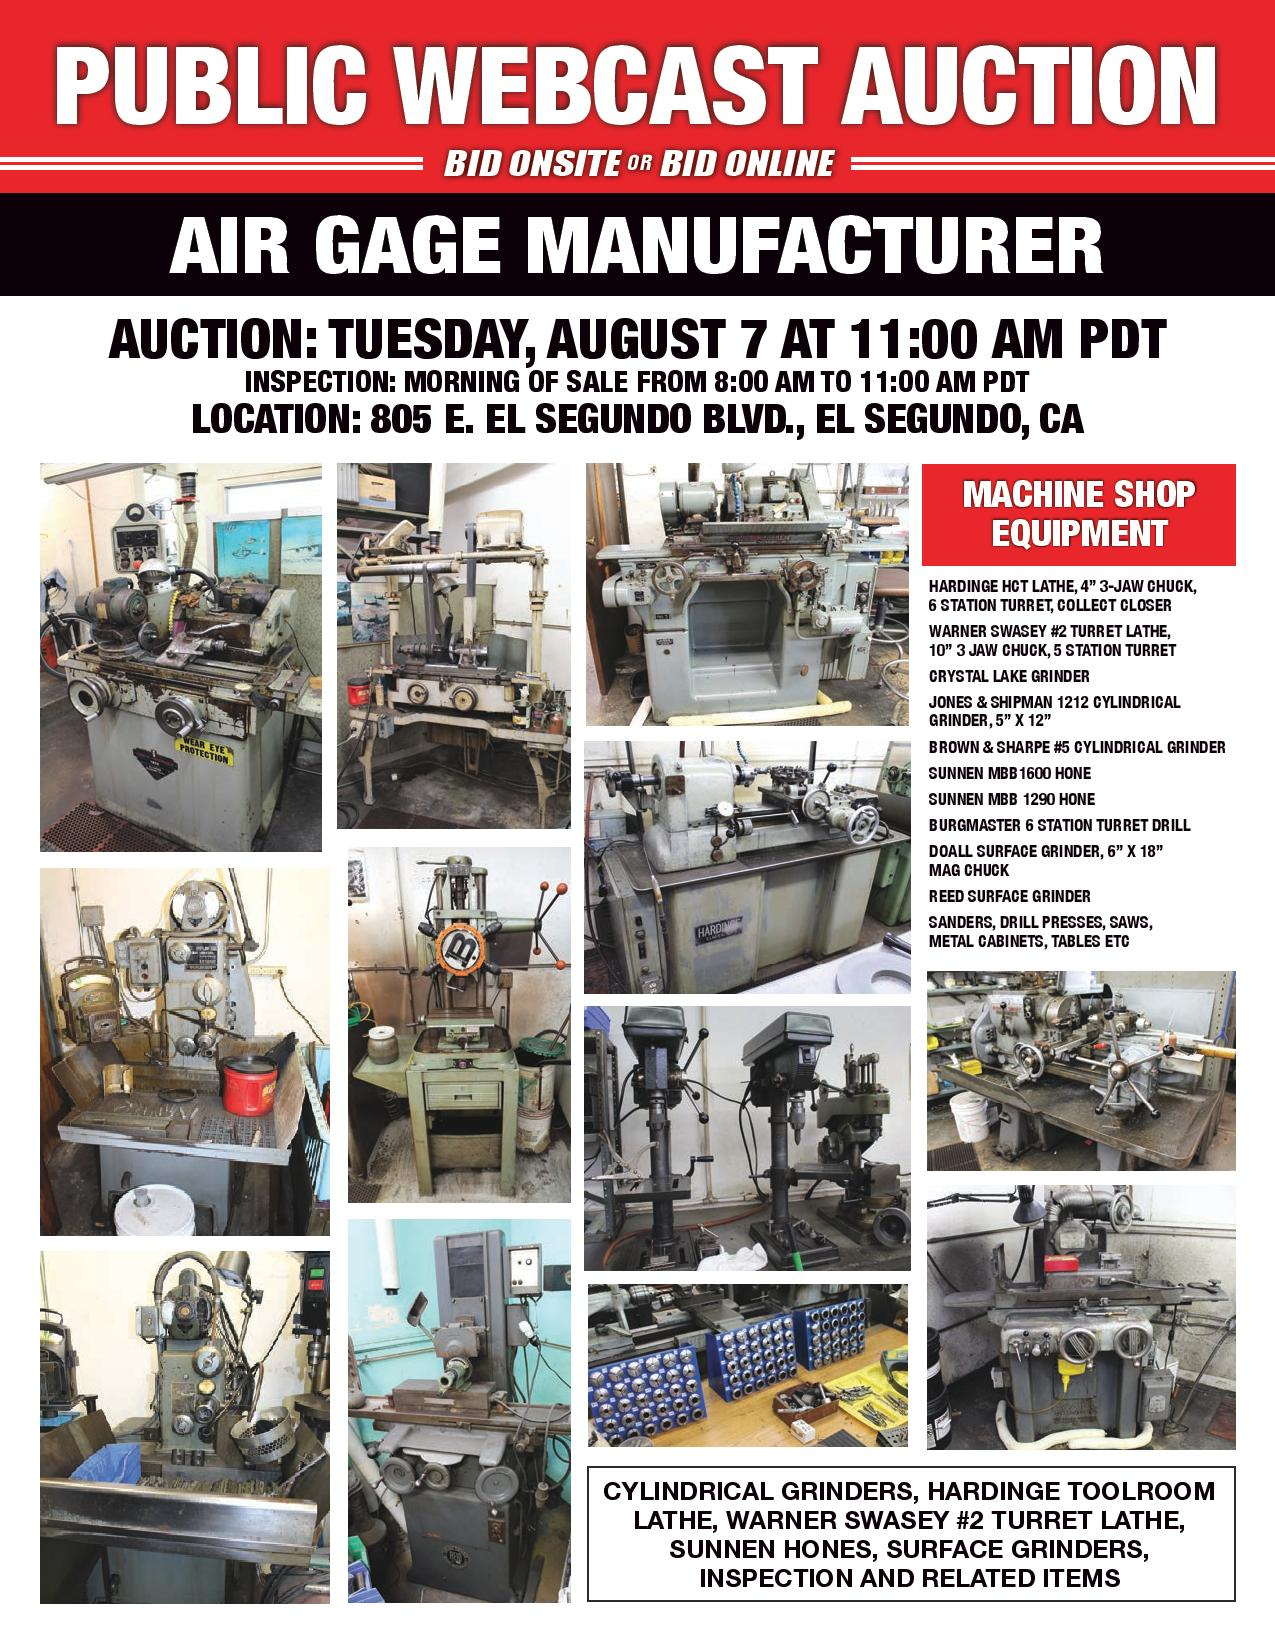 PRECISION AIR GAGE MANUFACTURER: HARDINGE TOOLROOM LATHES, SUNNEN HONES, PRECISION GRINDERS, INSPECTION AND RELATED ITEMS